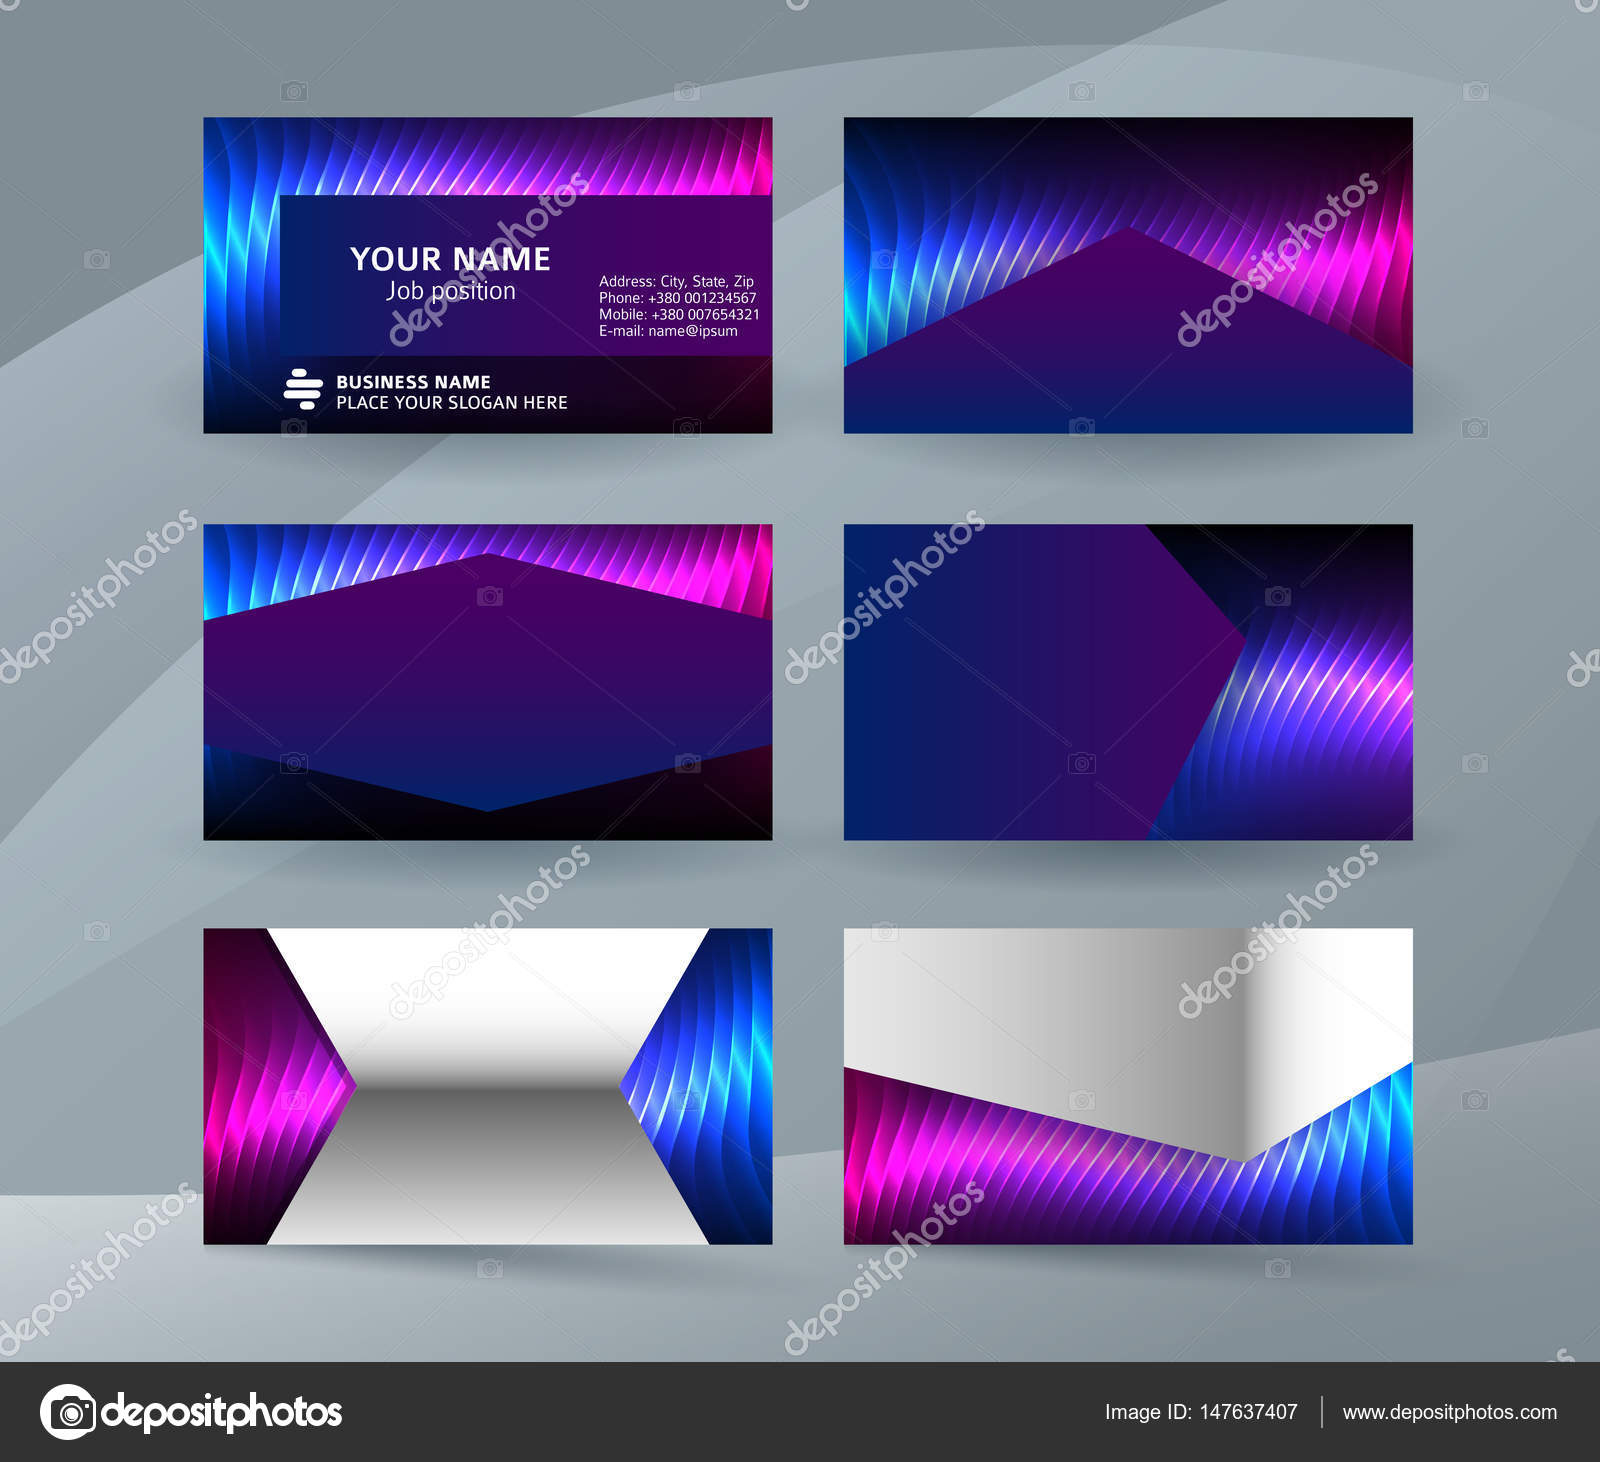 Business Card Background Blue Magenta Neon Effect03 Stock Vector